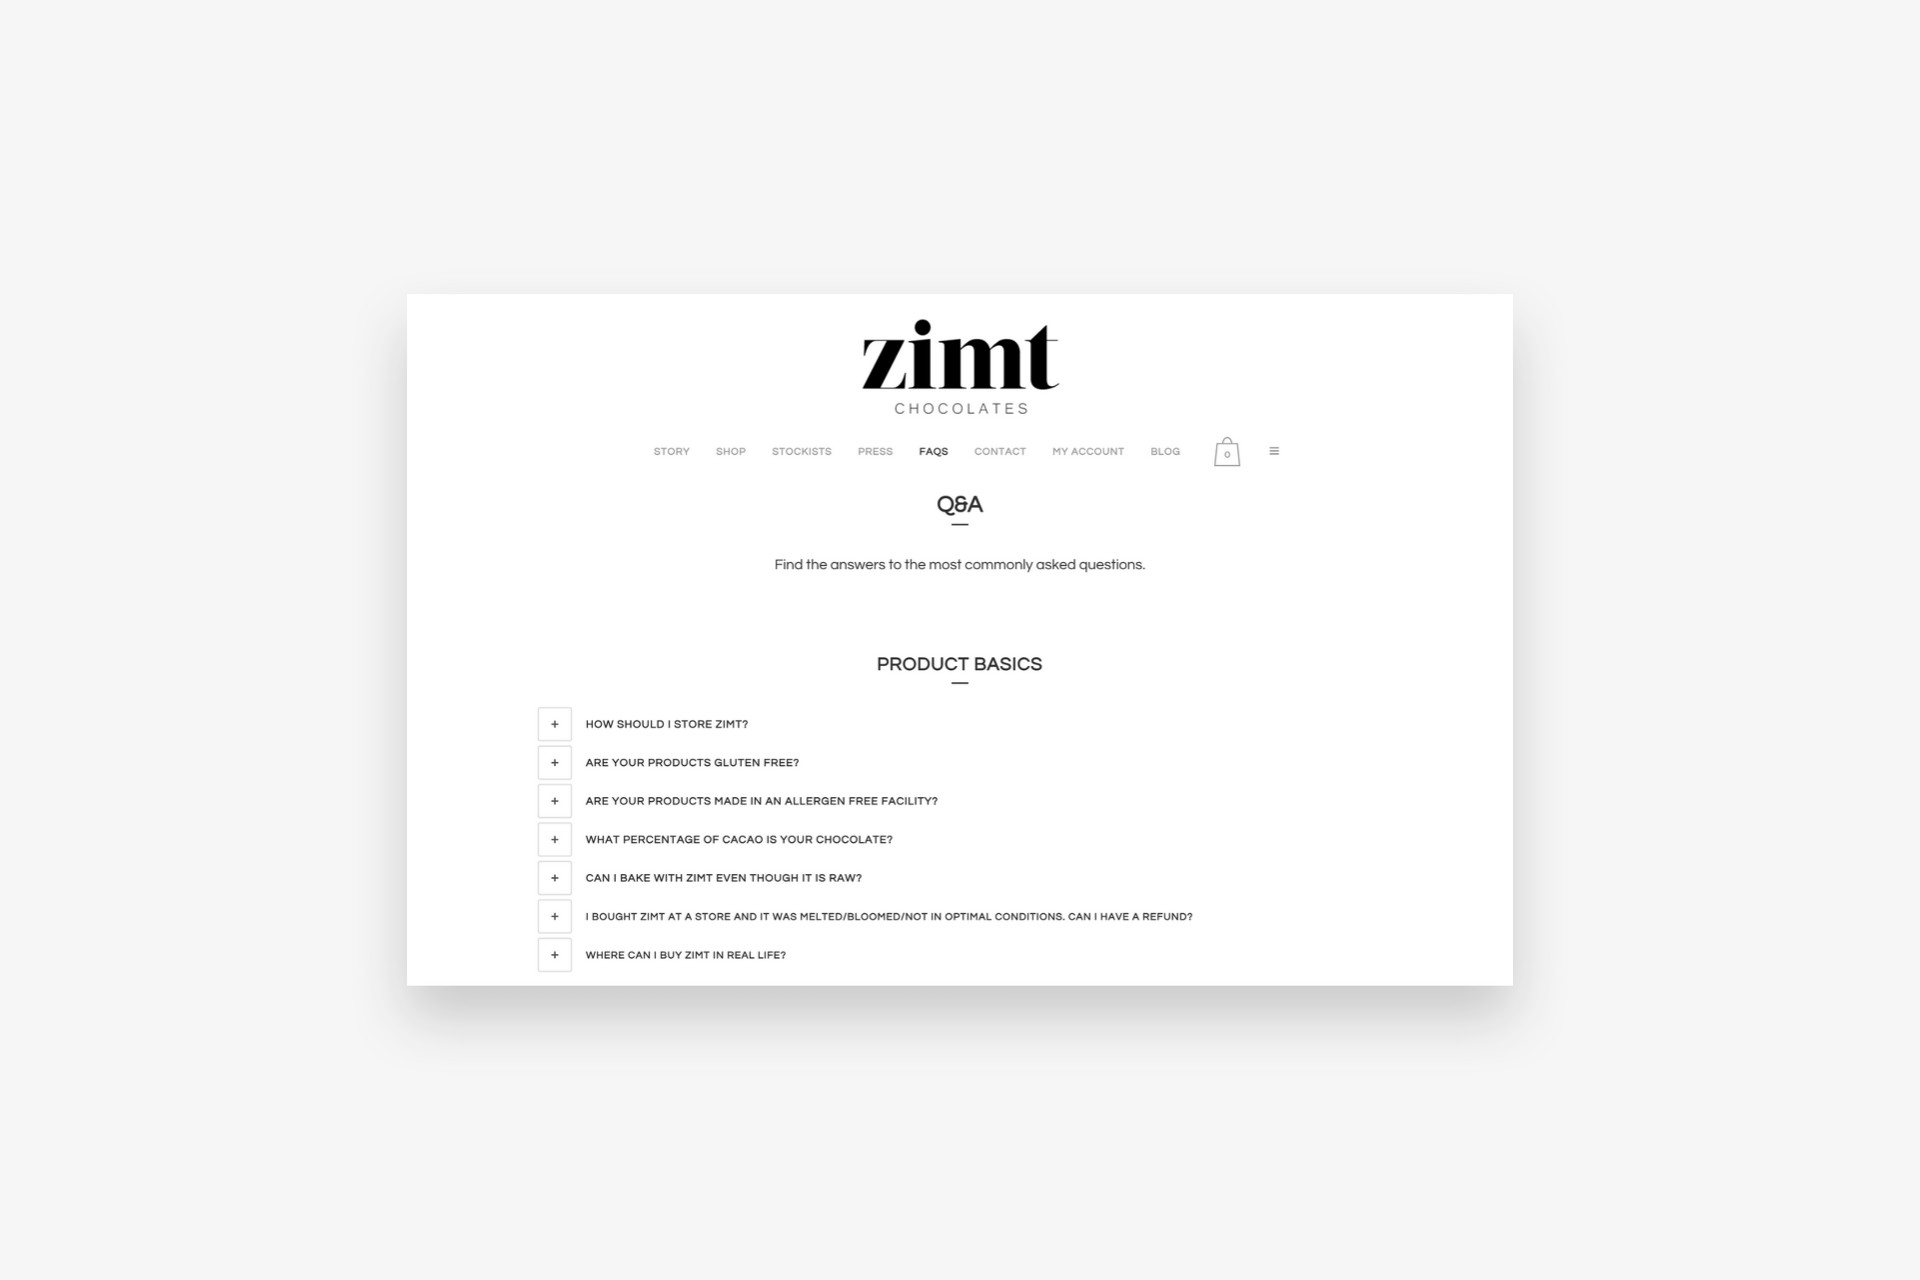 Zimt Chocolates FAQ Page